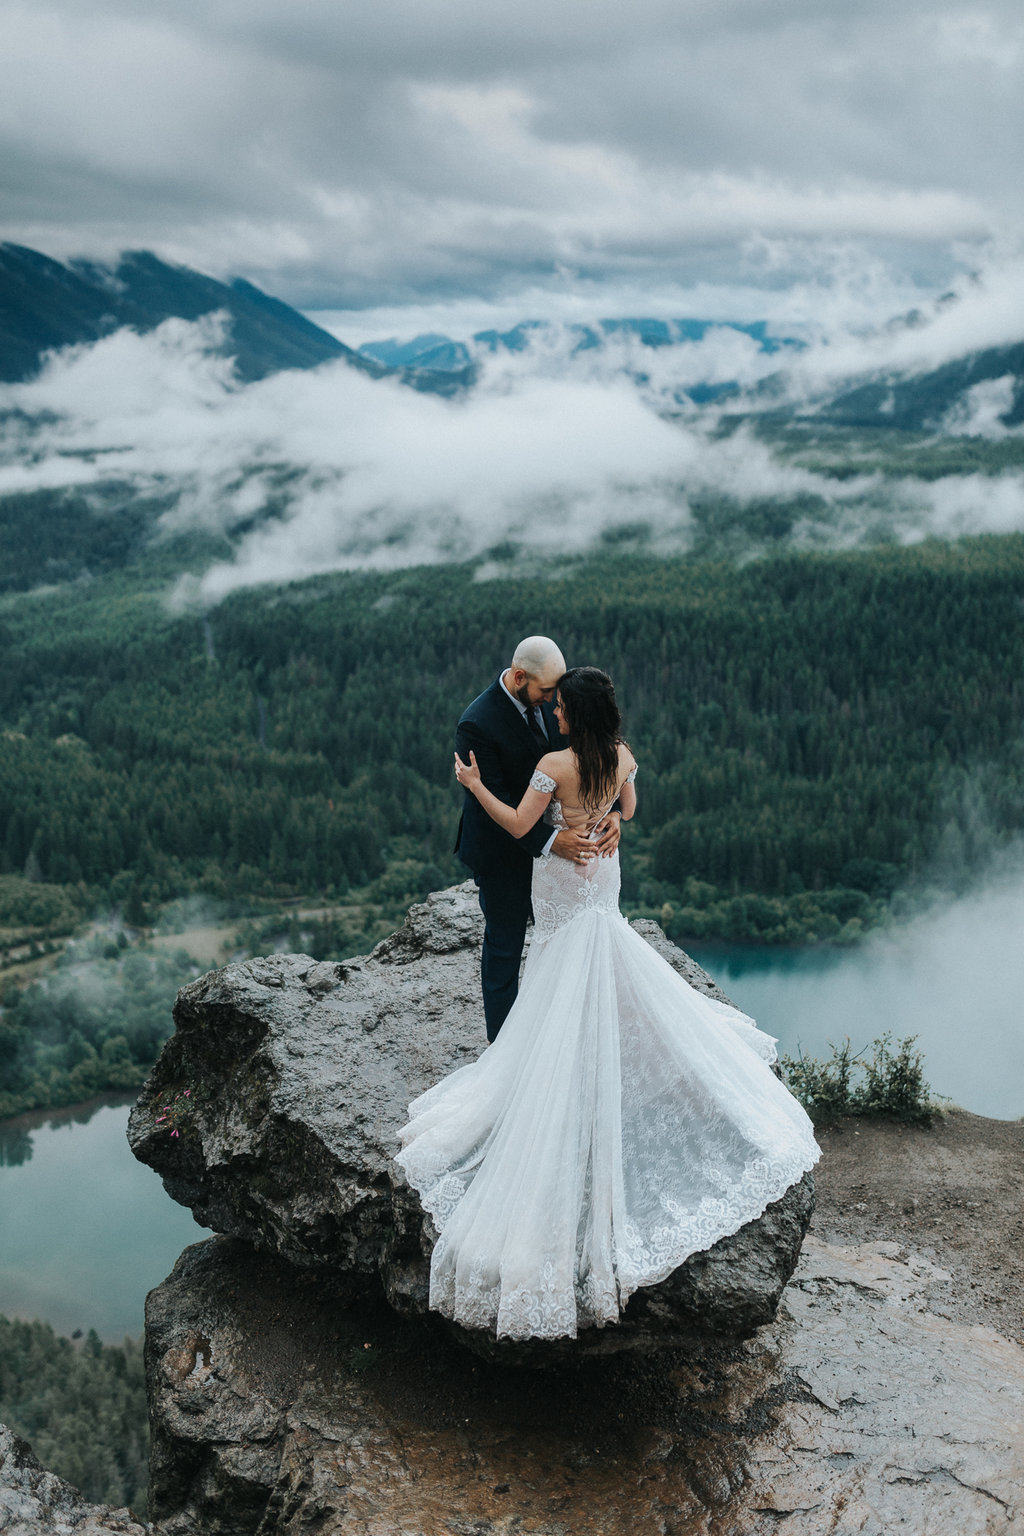 Mountaintop elopement in Mt. Baker in North Cascades, Seattle Washington